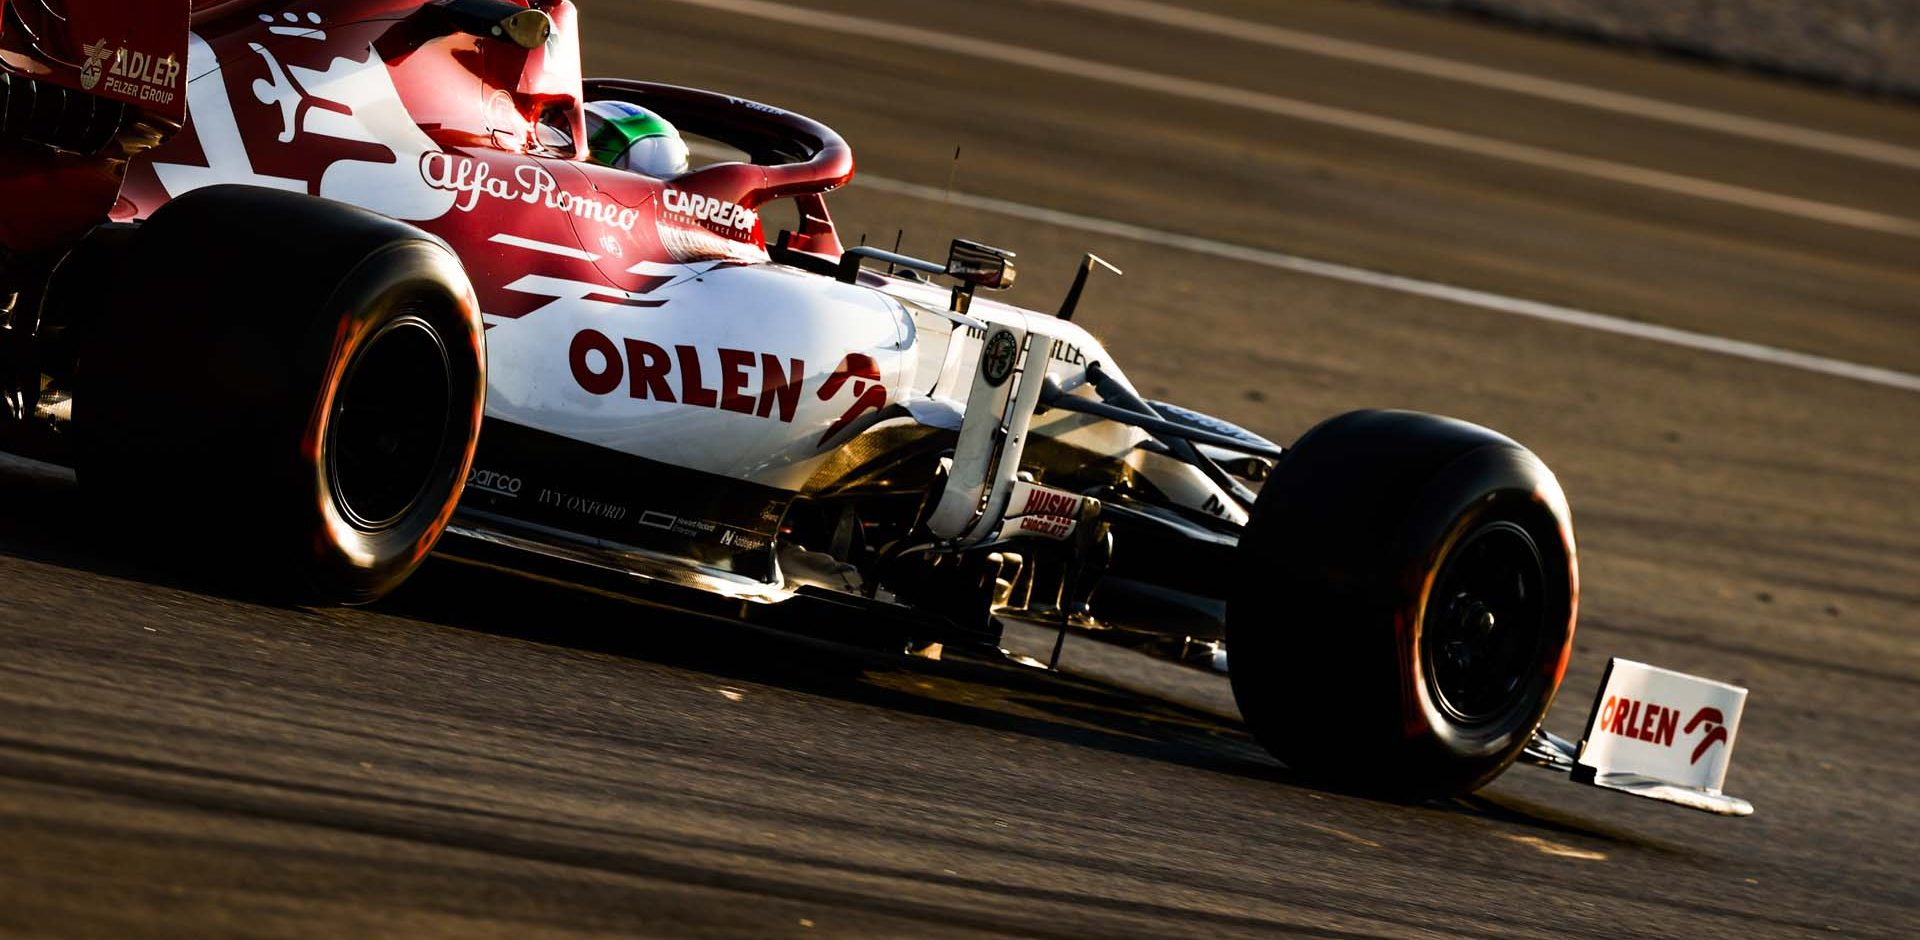 GIOVINAZZI Antonio (ita), Alfa Romeo Racing C39, action during the first session of the Formula 1 Pre-season testing 2020 from February 19 to 21, 2020 on the Circuit de Barcelona-Catalunya, in Montmelo, Barcelona, Spain - Photo Florent Gooden / DPPI